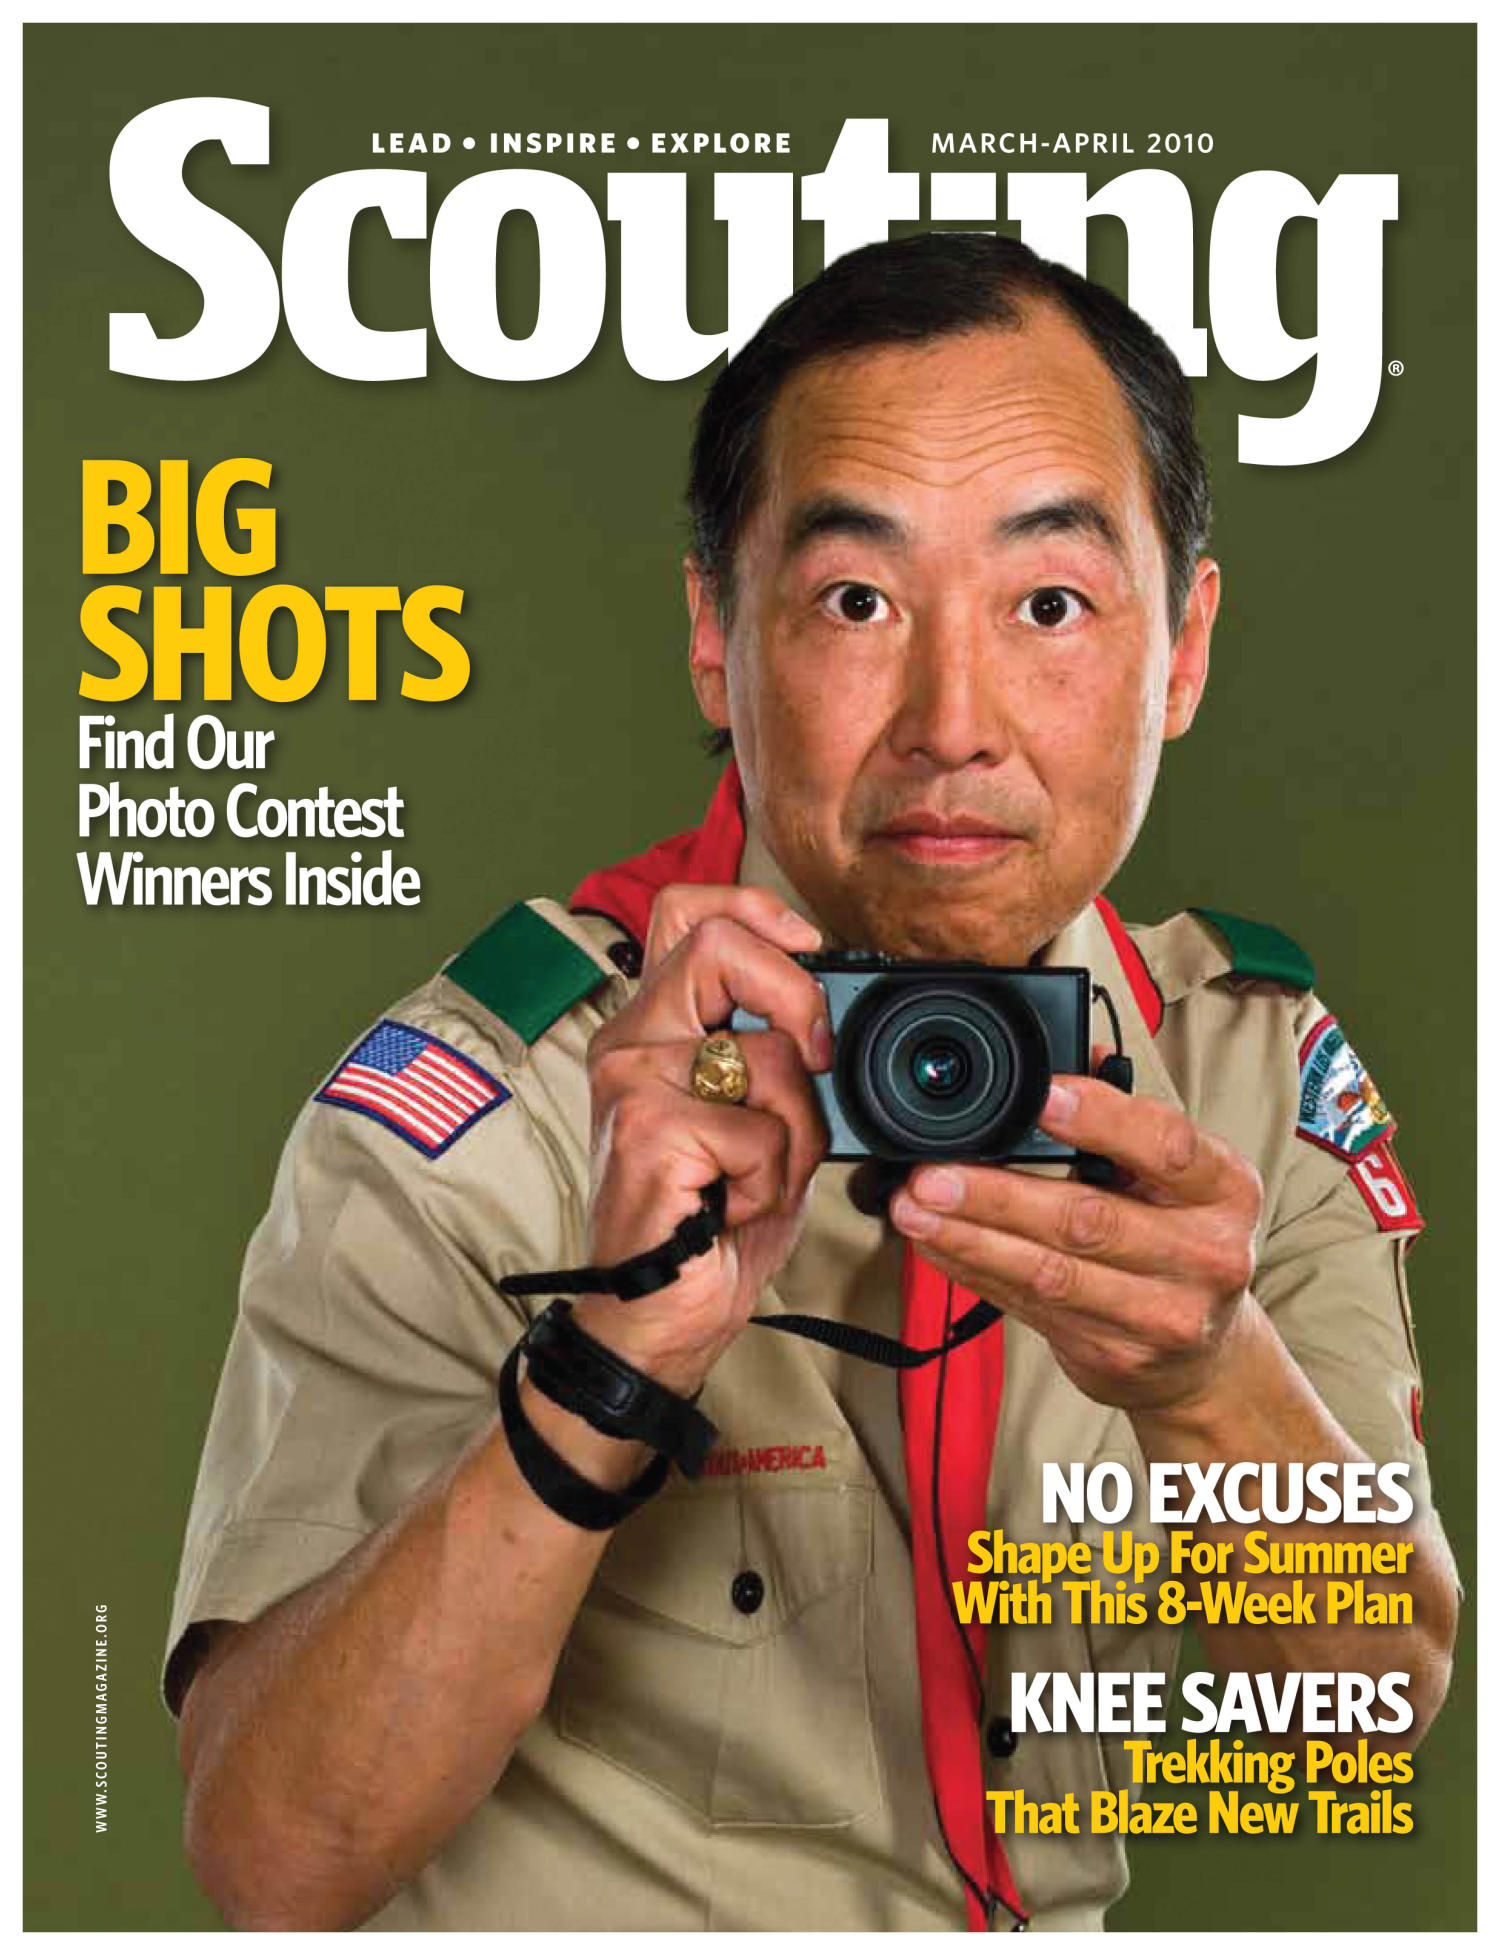 Scouting, Volume 98, Number 2, March-April 2010                                                                                                      Front Cover